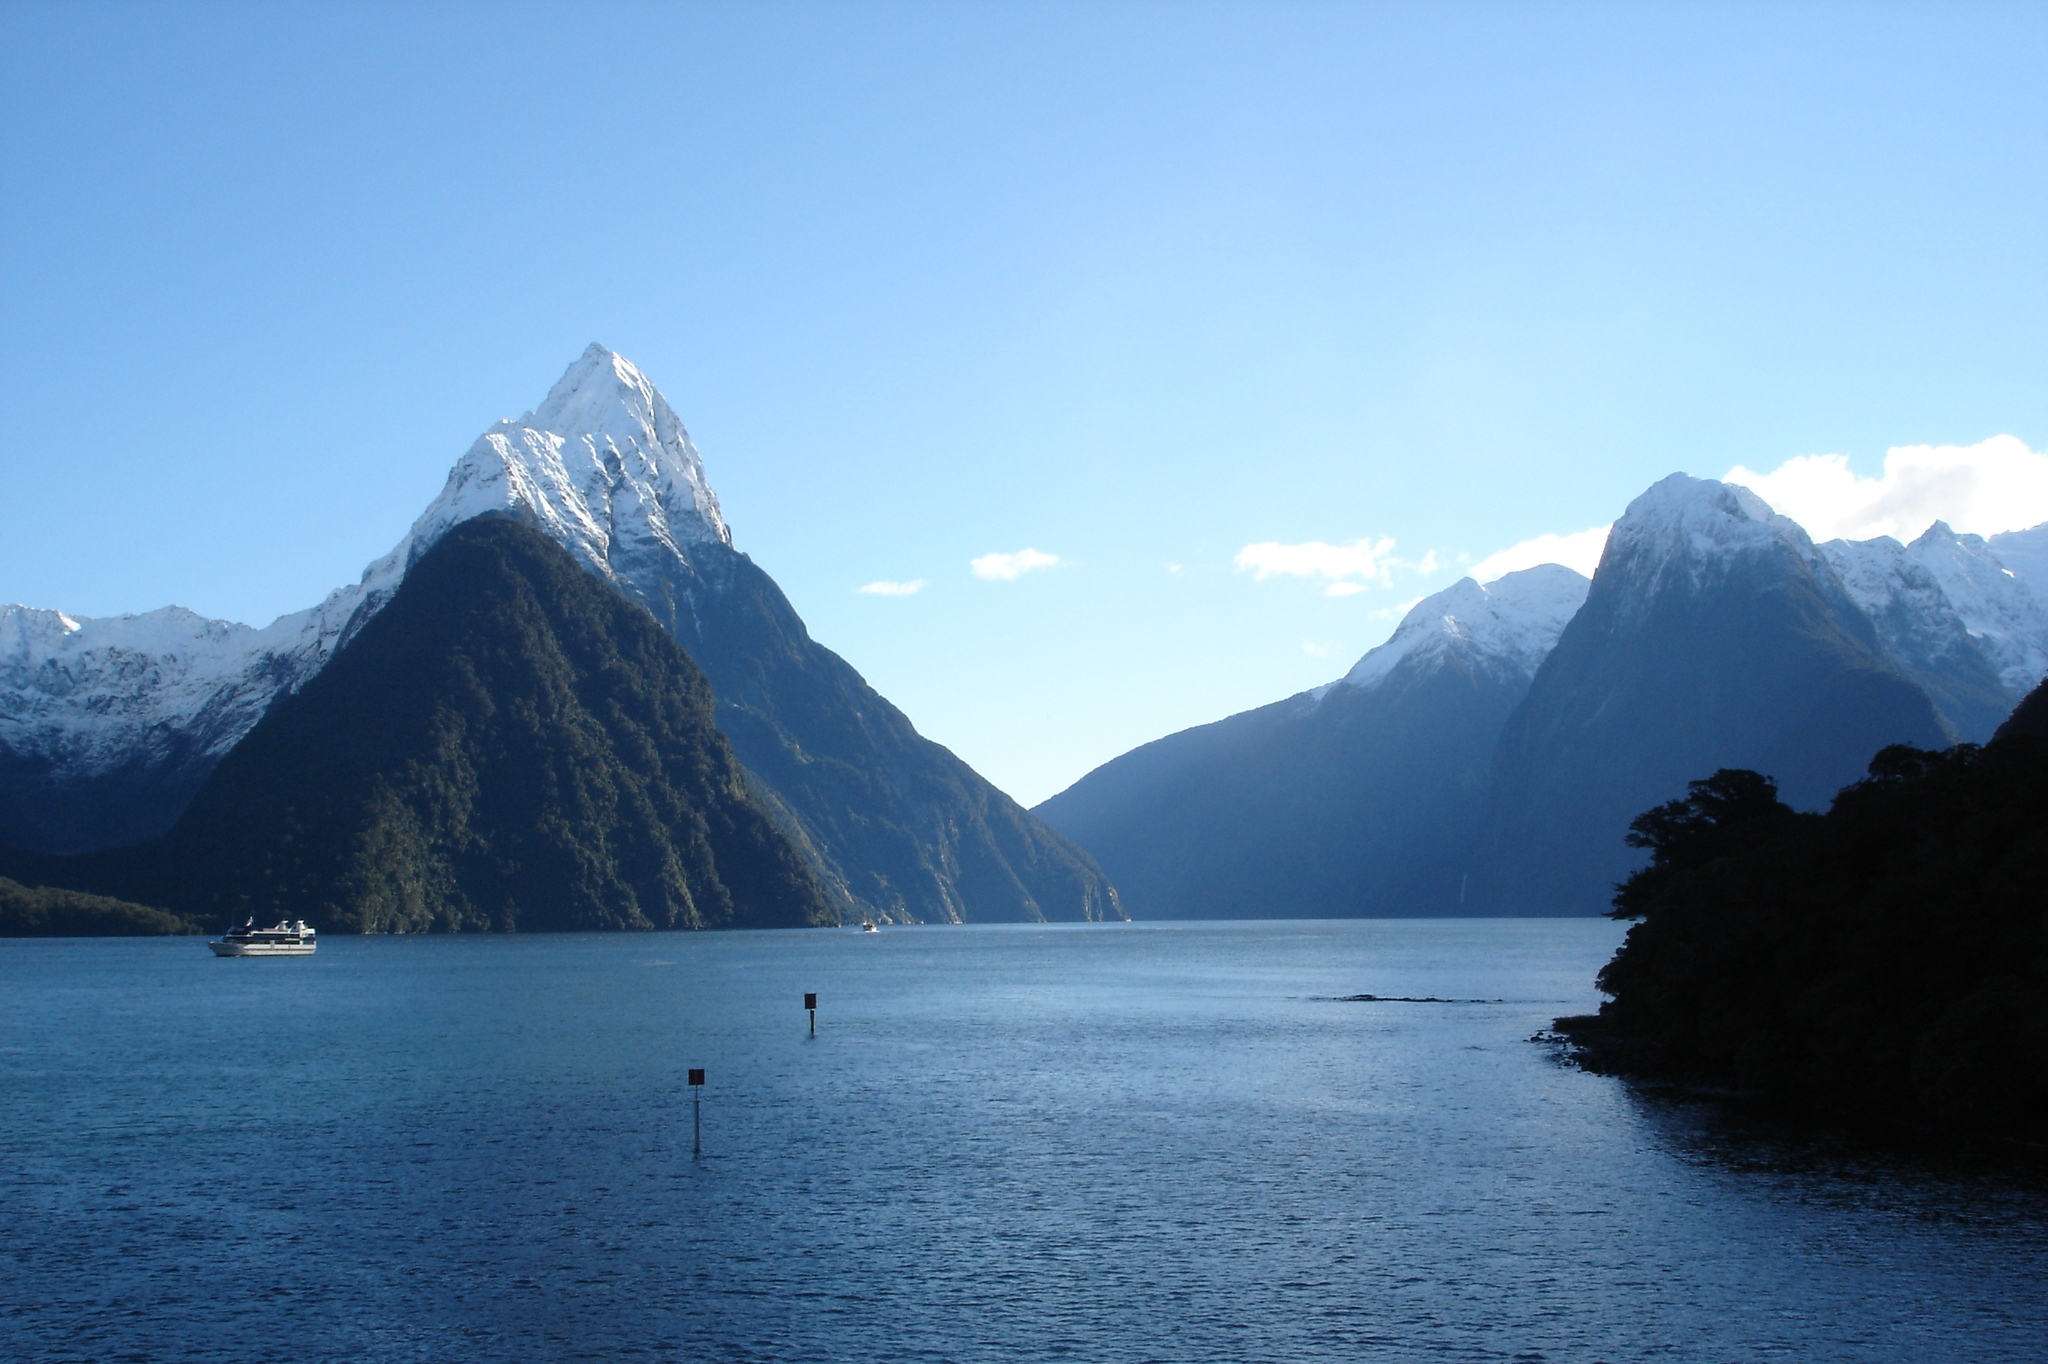 Milford Sound landscape in New Zealand.